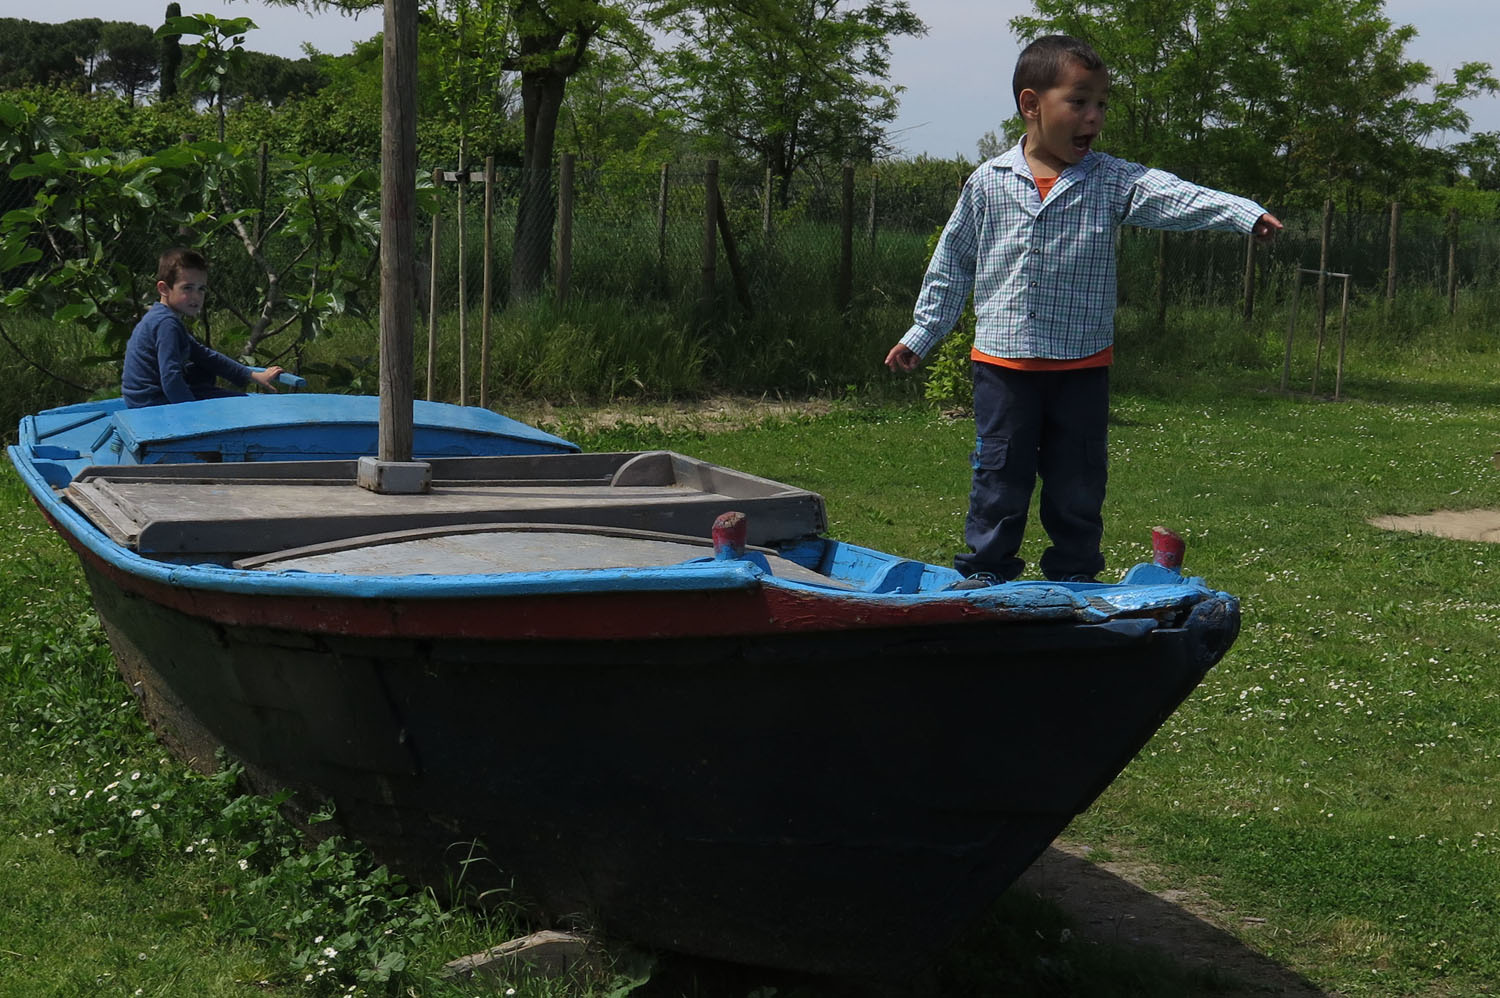 Italy-Venice-Islands-Torcello-Kids-Playing